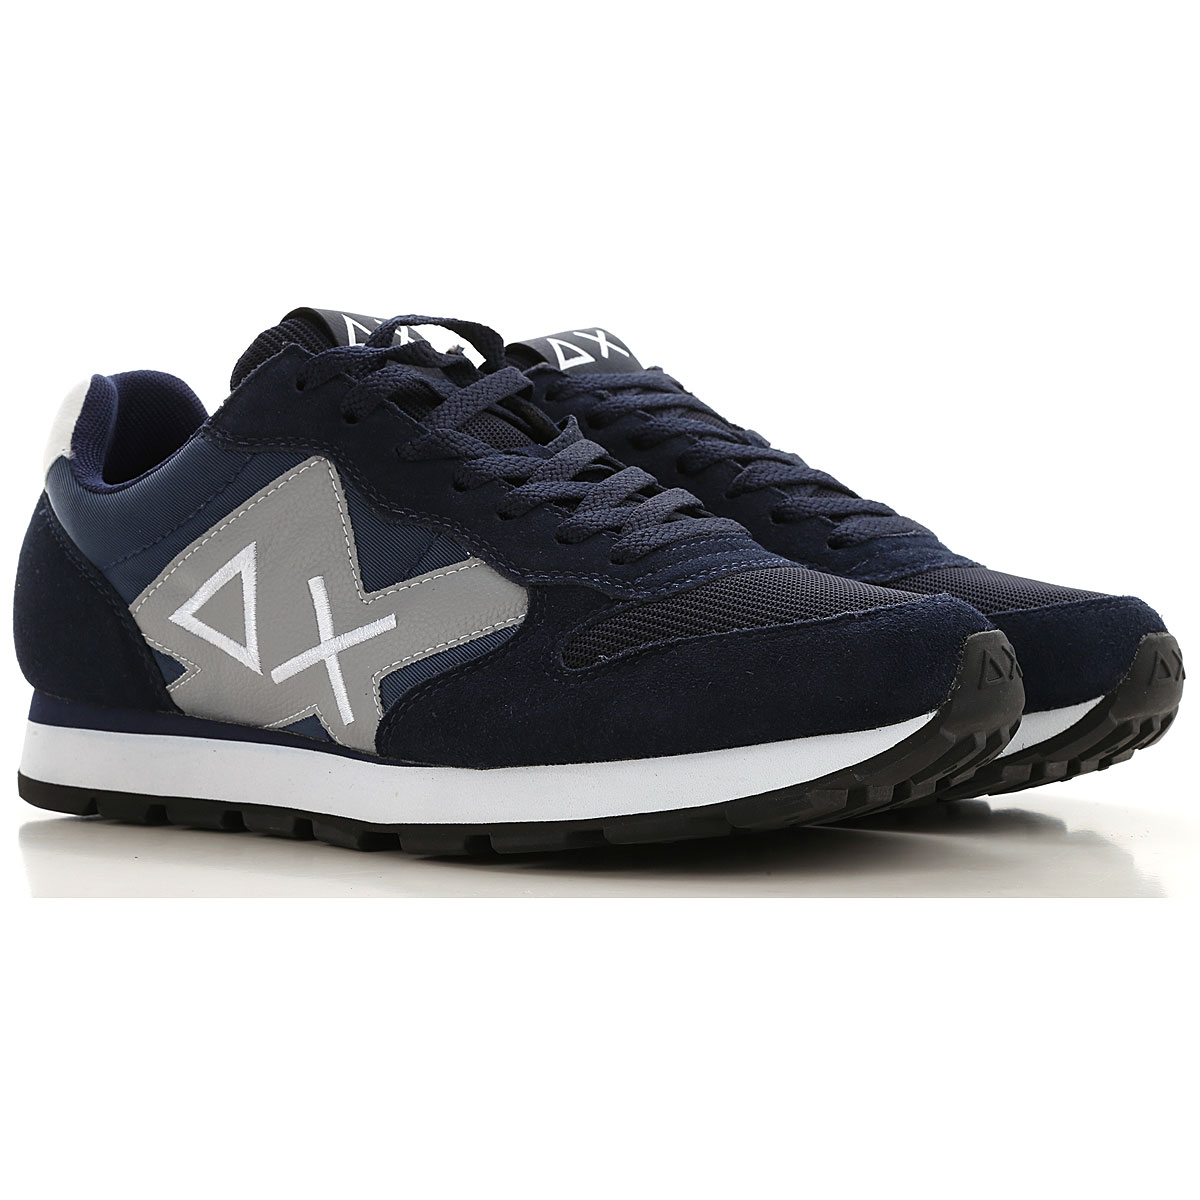 Sun68 Sneakers for Men On Sale, Blue Navy, Leather, 2019, 10 10.5 11.5 7.5 8